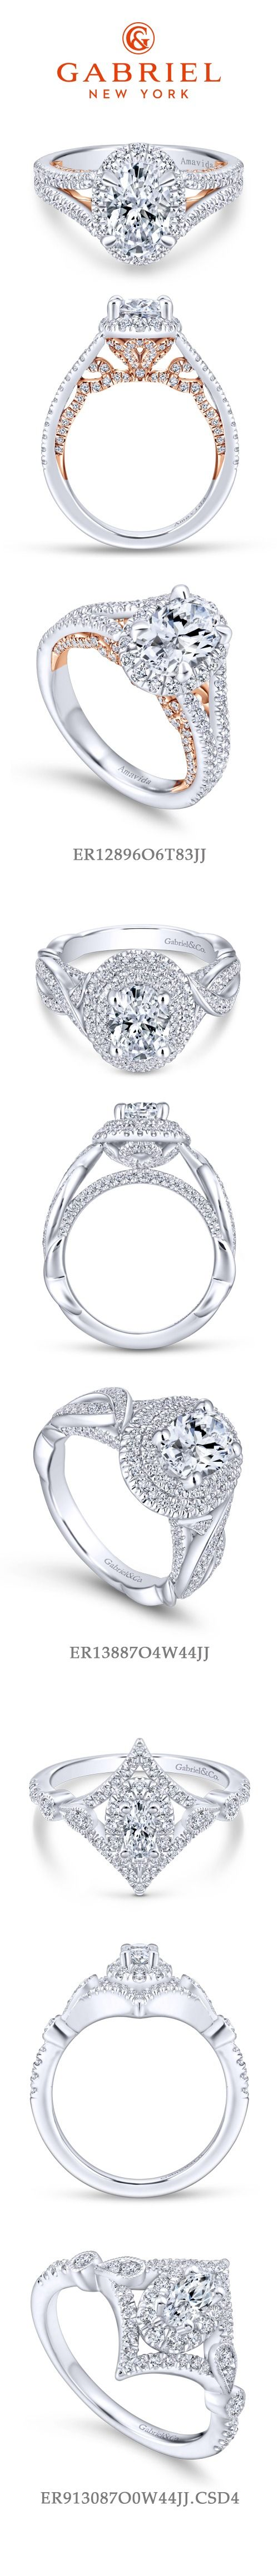 Get 20 Halo wedding rings ideas on Pinterest without signing up